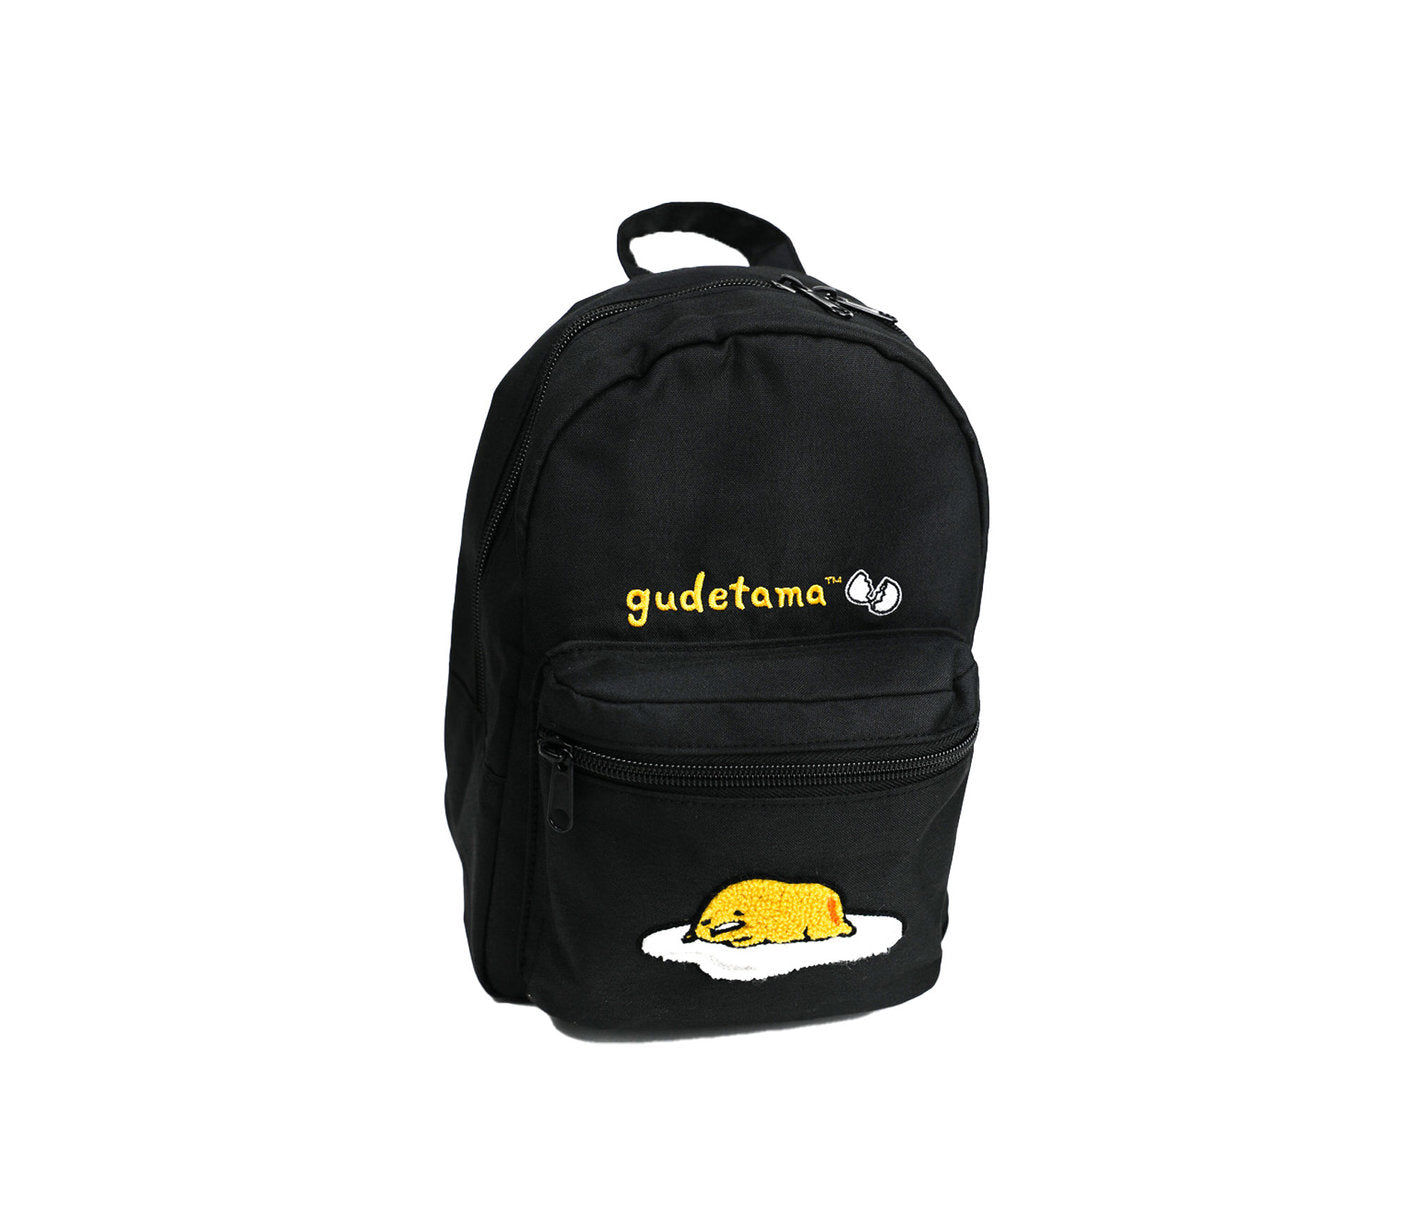 Gudetama Black Mini Backpack